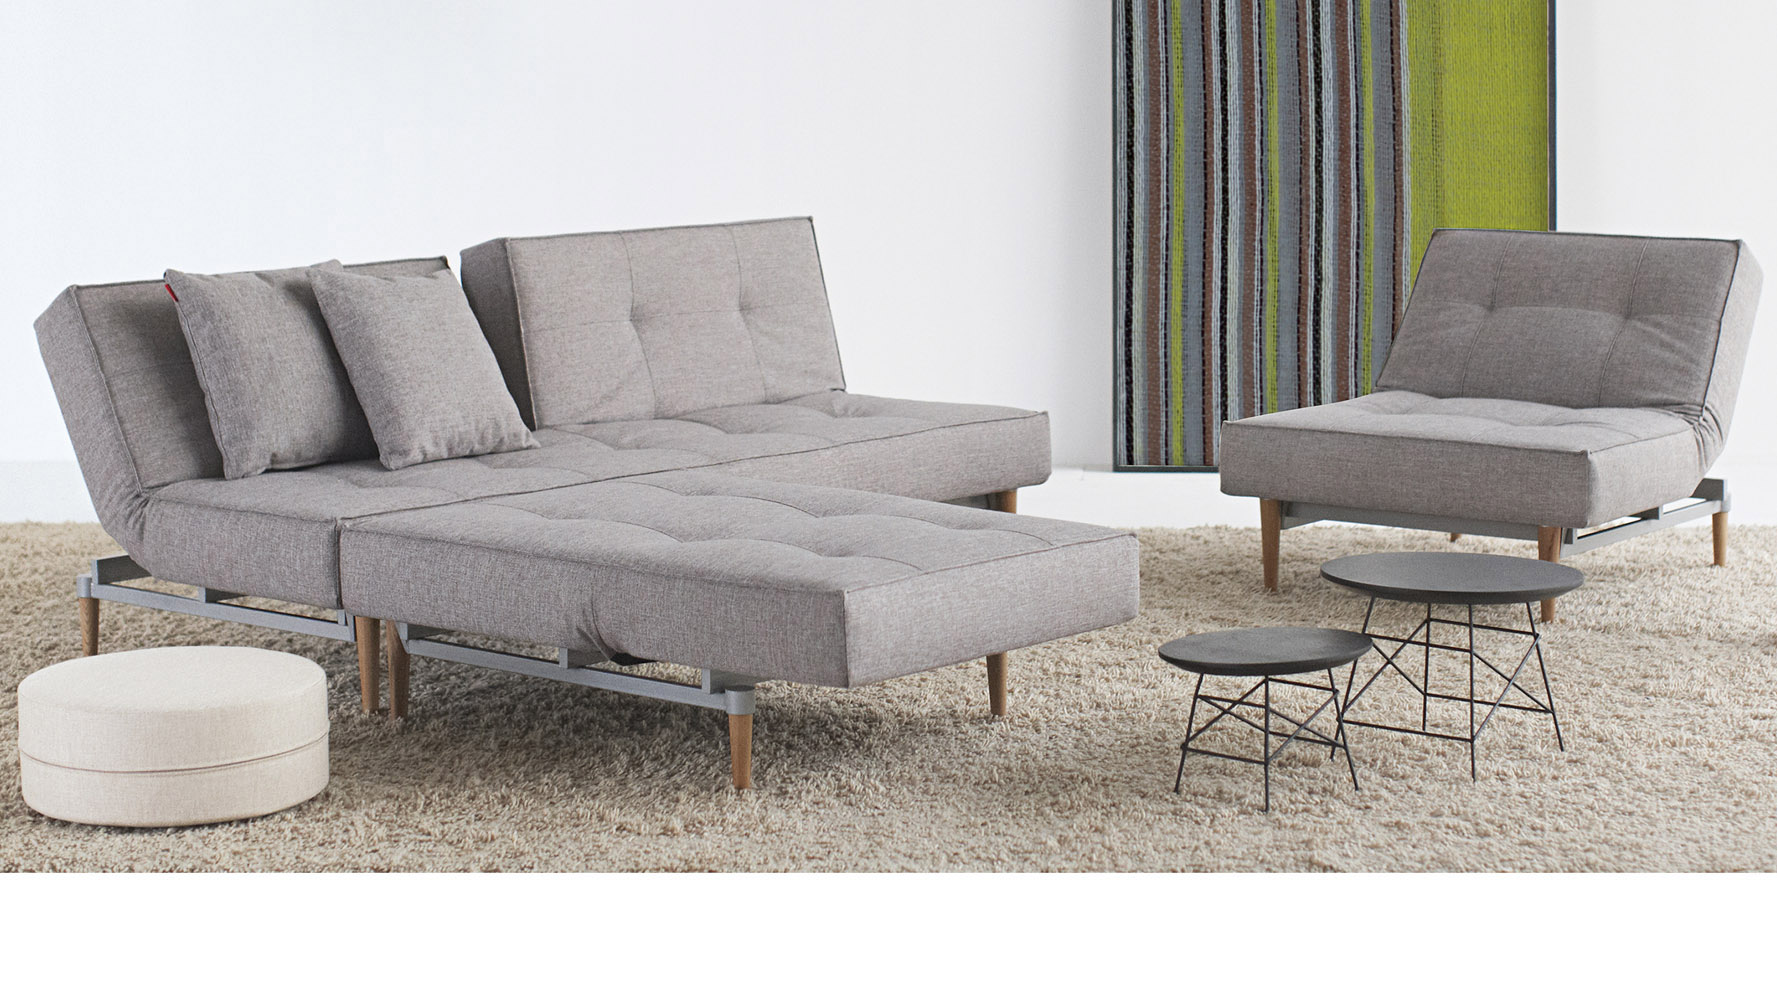 Marvelous photograph of Home / LIVING / Sleepers / Sofi Split Back Sofabed Wood Base with #7C7D44 color and 1778x1000 pixels